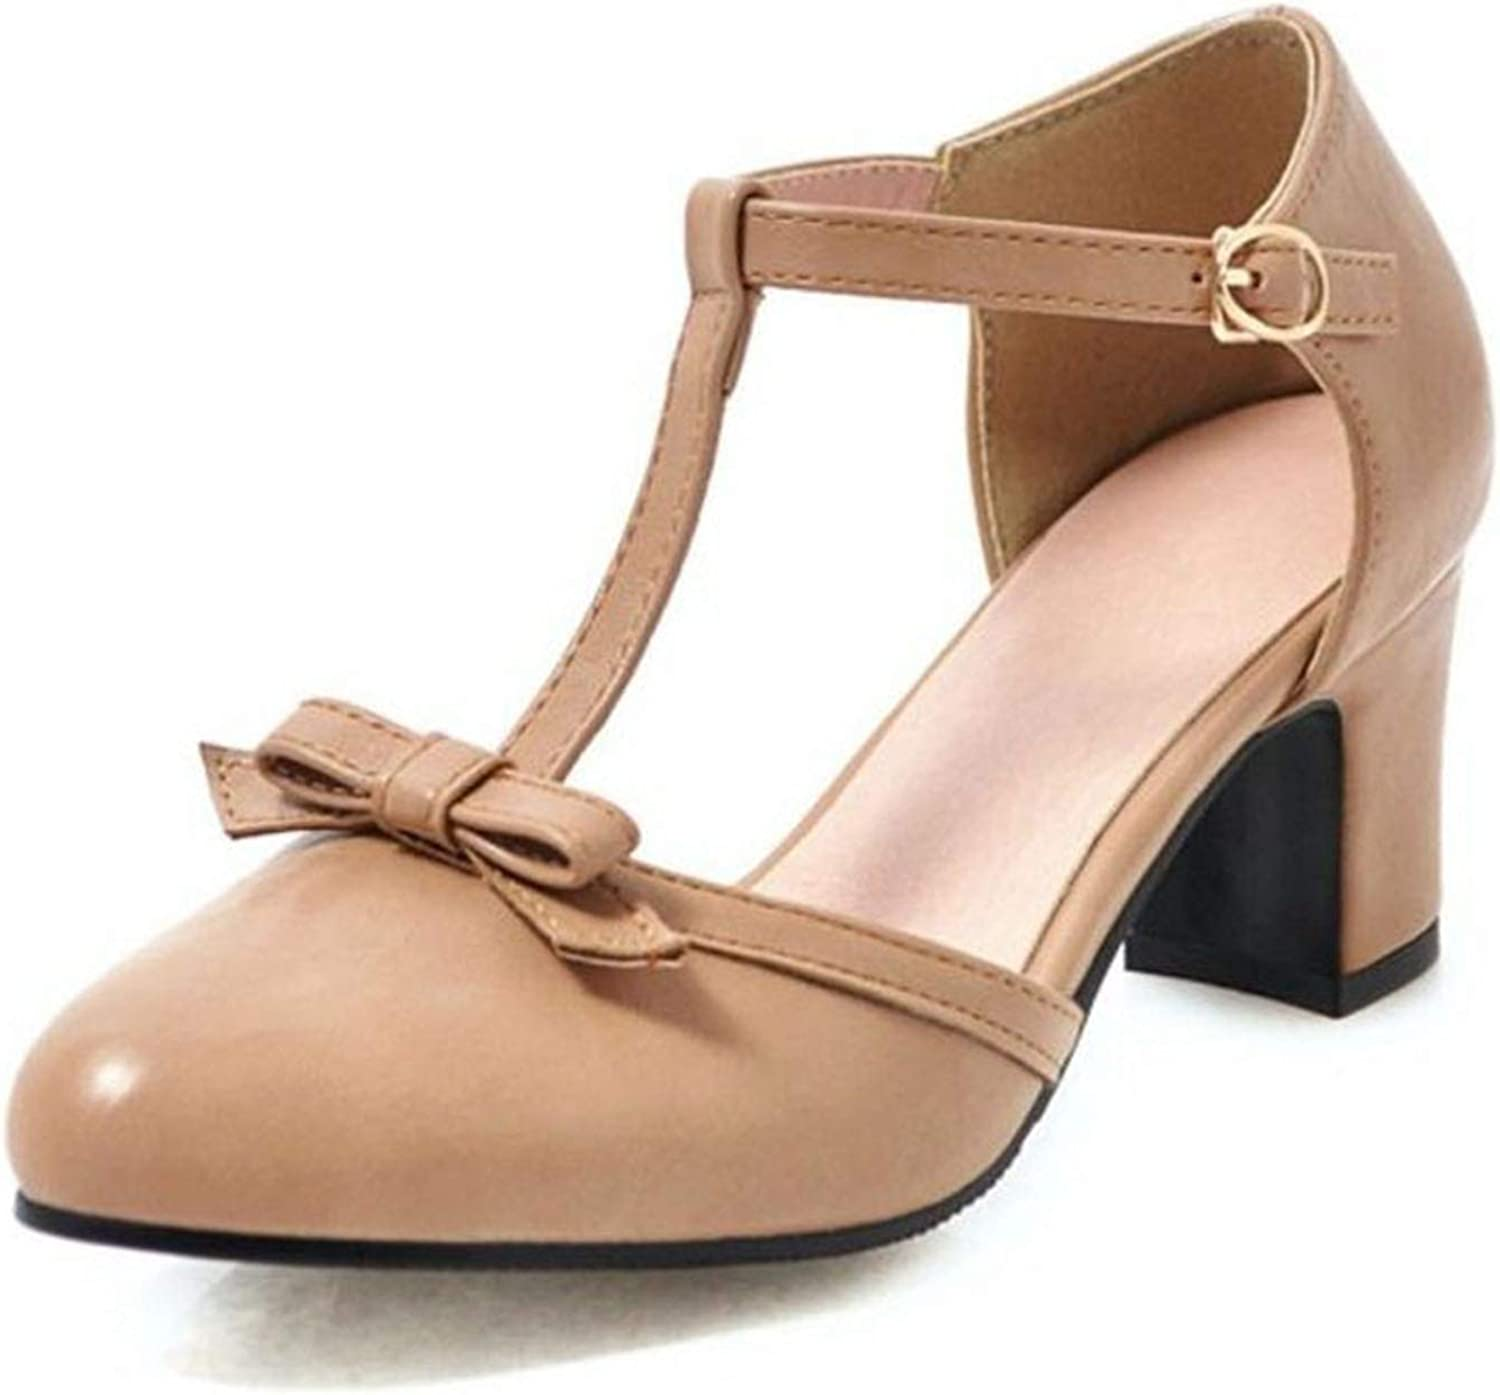 Bowknot Sweet Party Youngs shoes Women Ladies Wedding Dating Square Heels Sandals Summer shoes